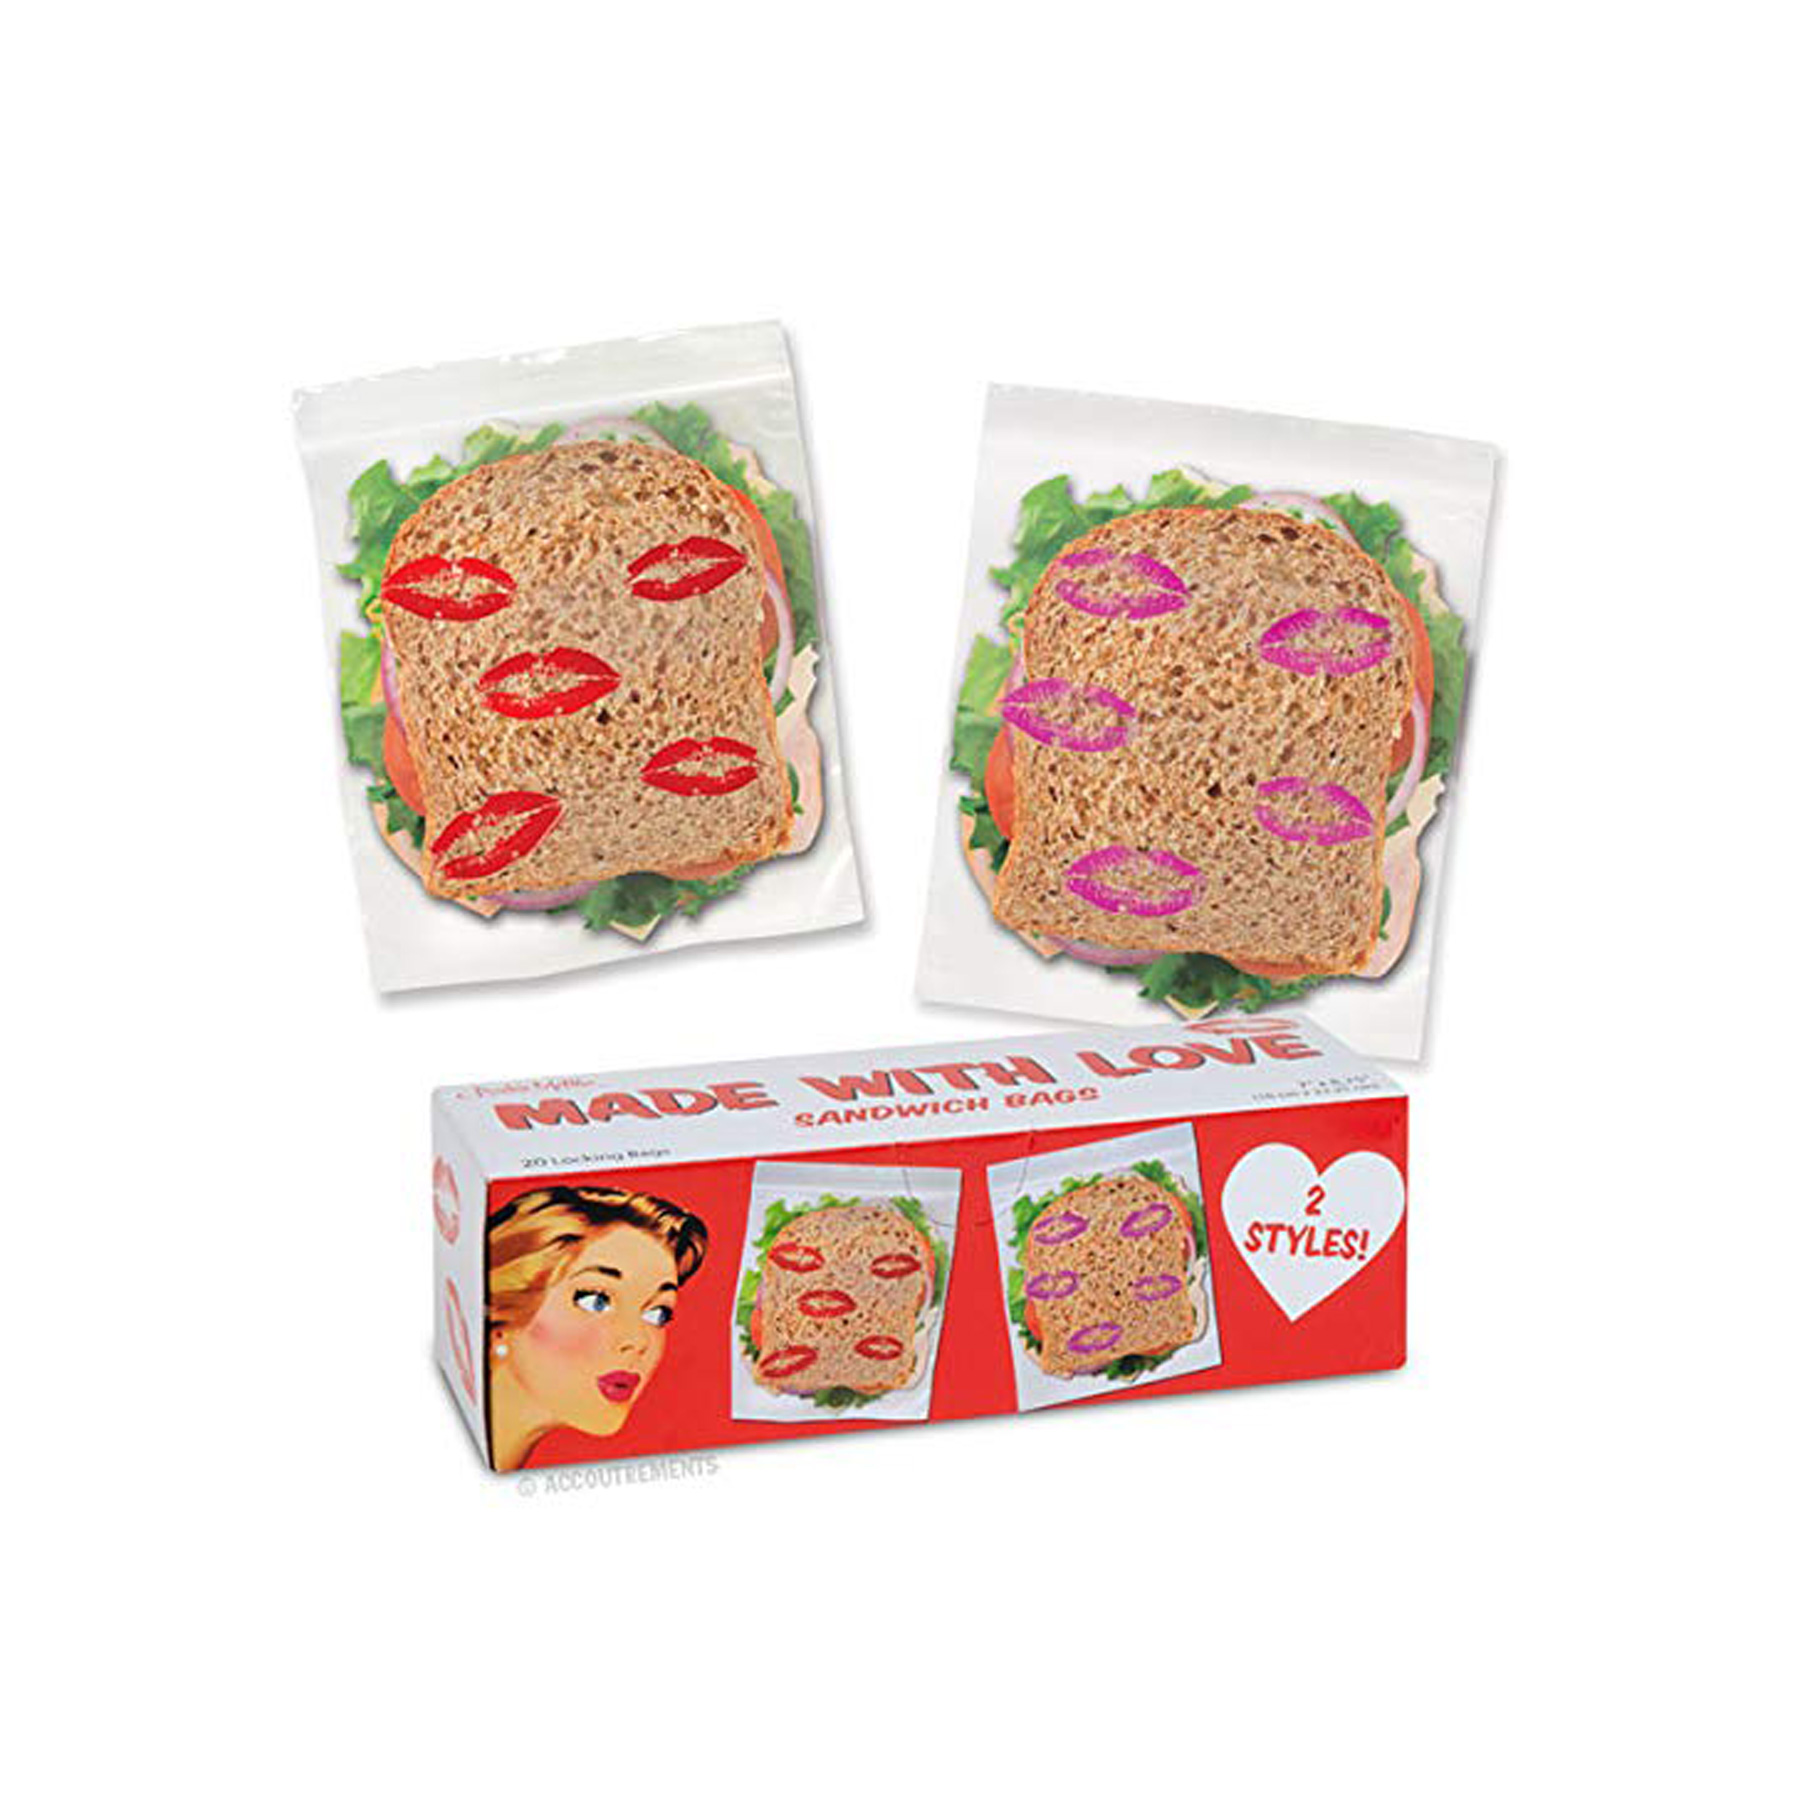 Funny Valentine's Day Gifts: Made With Love Sandwich Bags